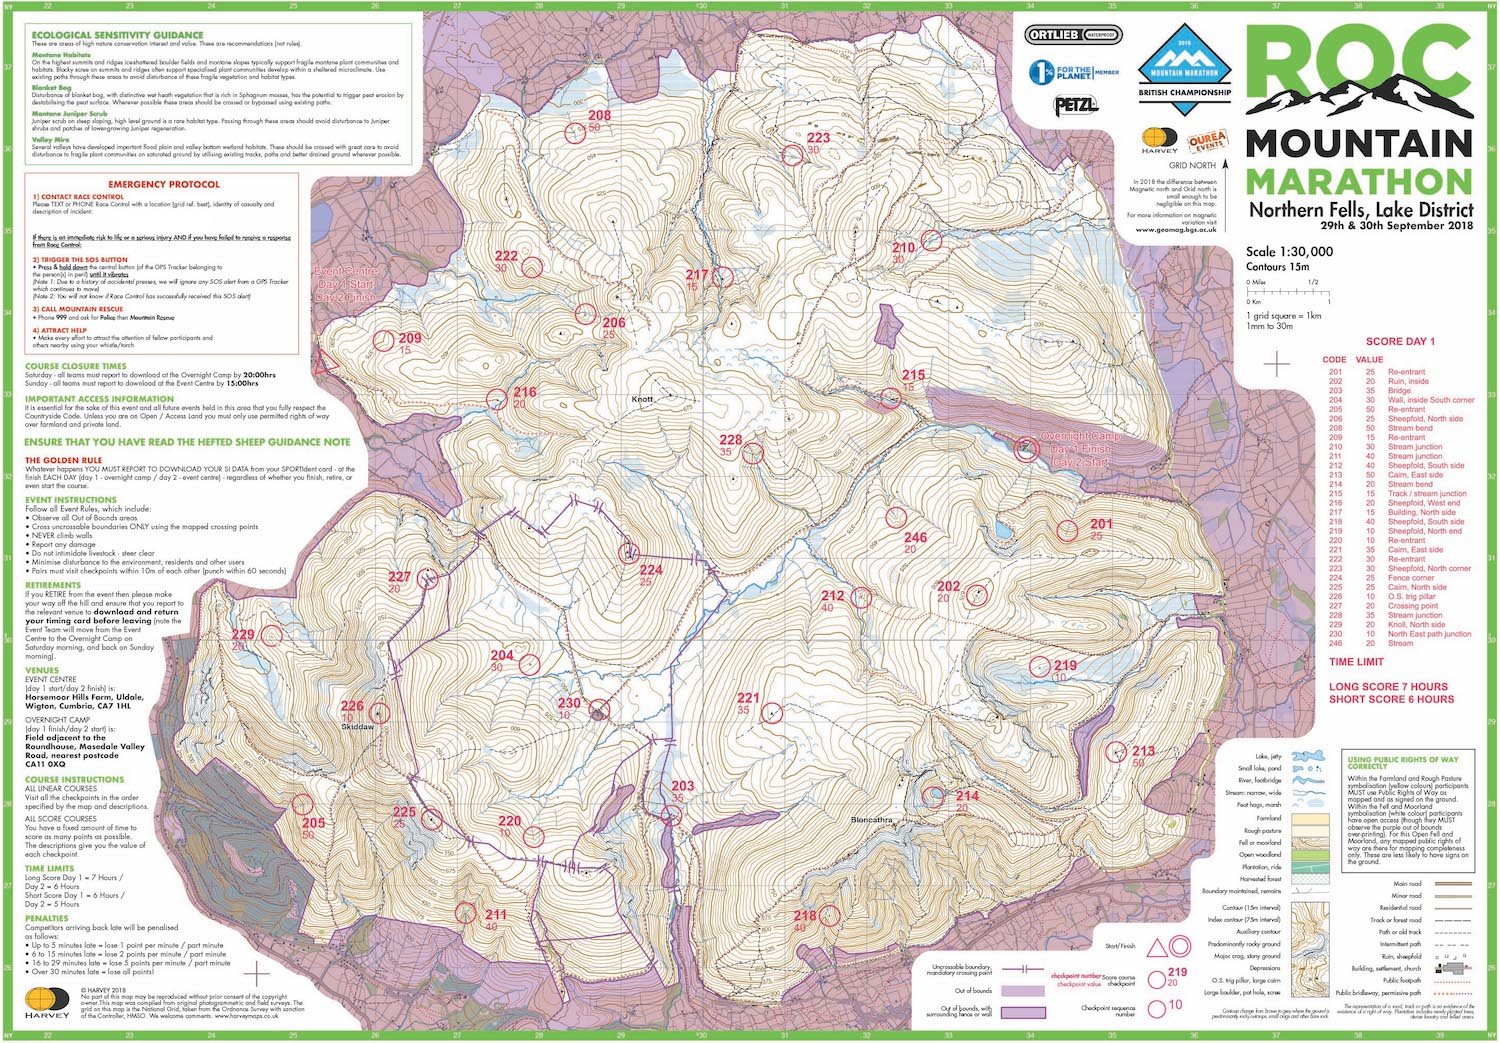 An example score course map from our sister event the ROC Mountain Marathon™